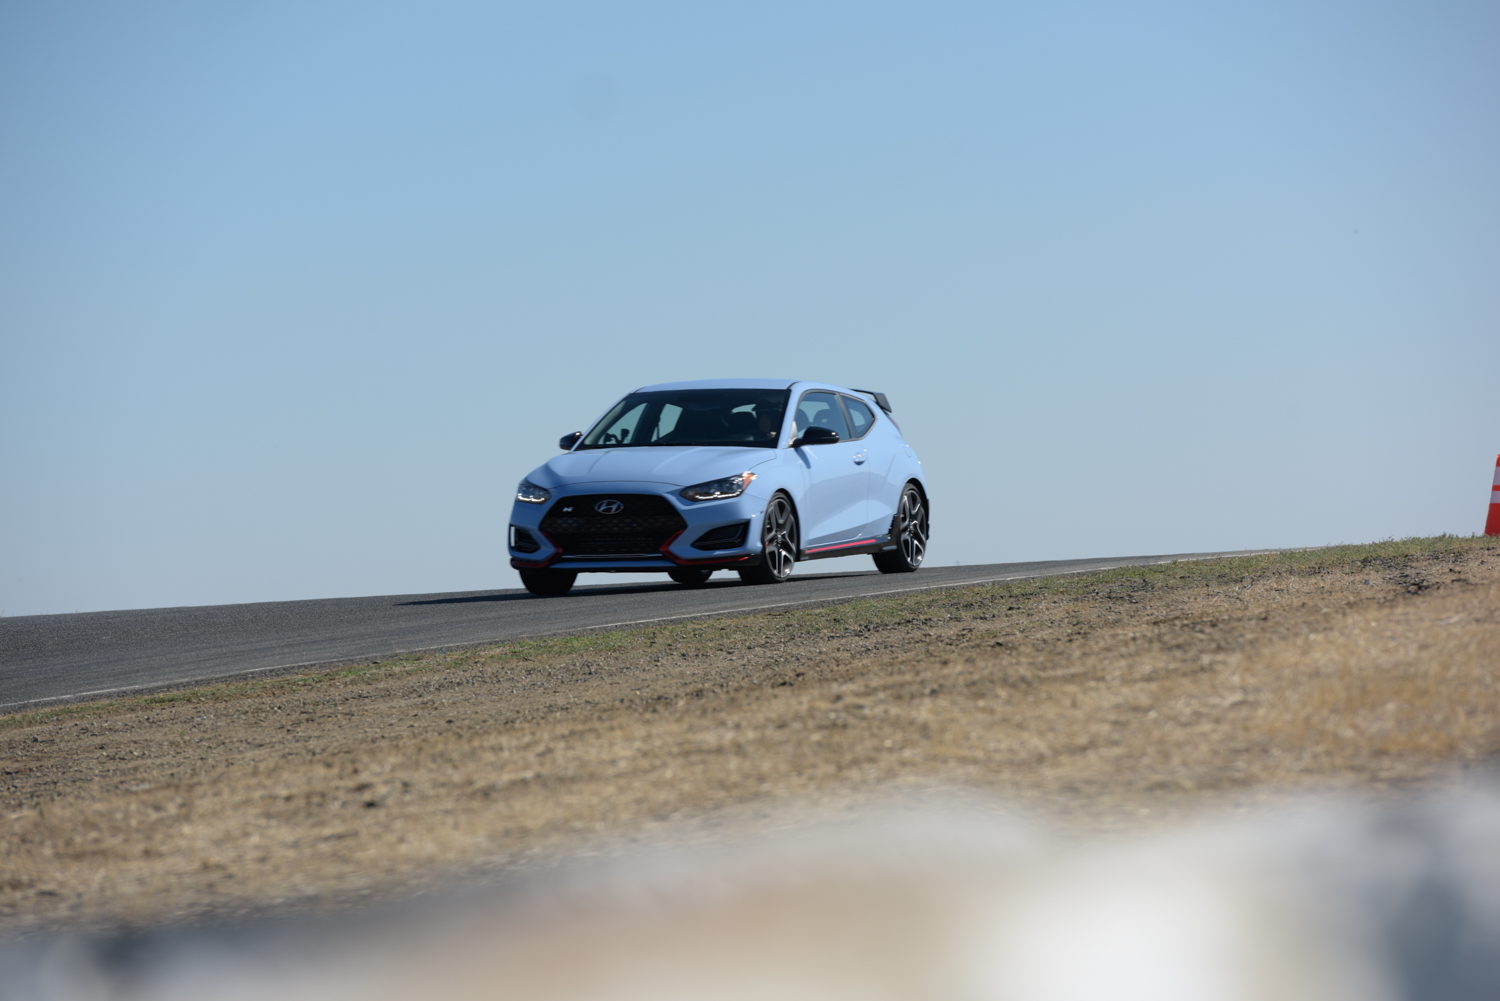 2019 Hyundai Veloster N hill 3/4 low